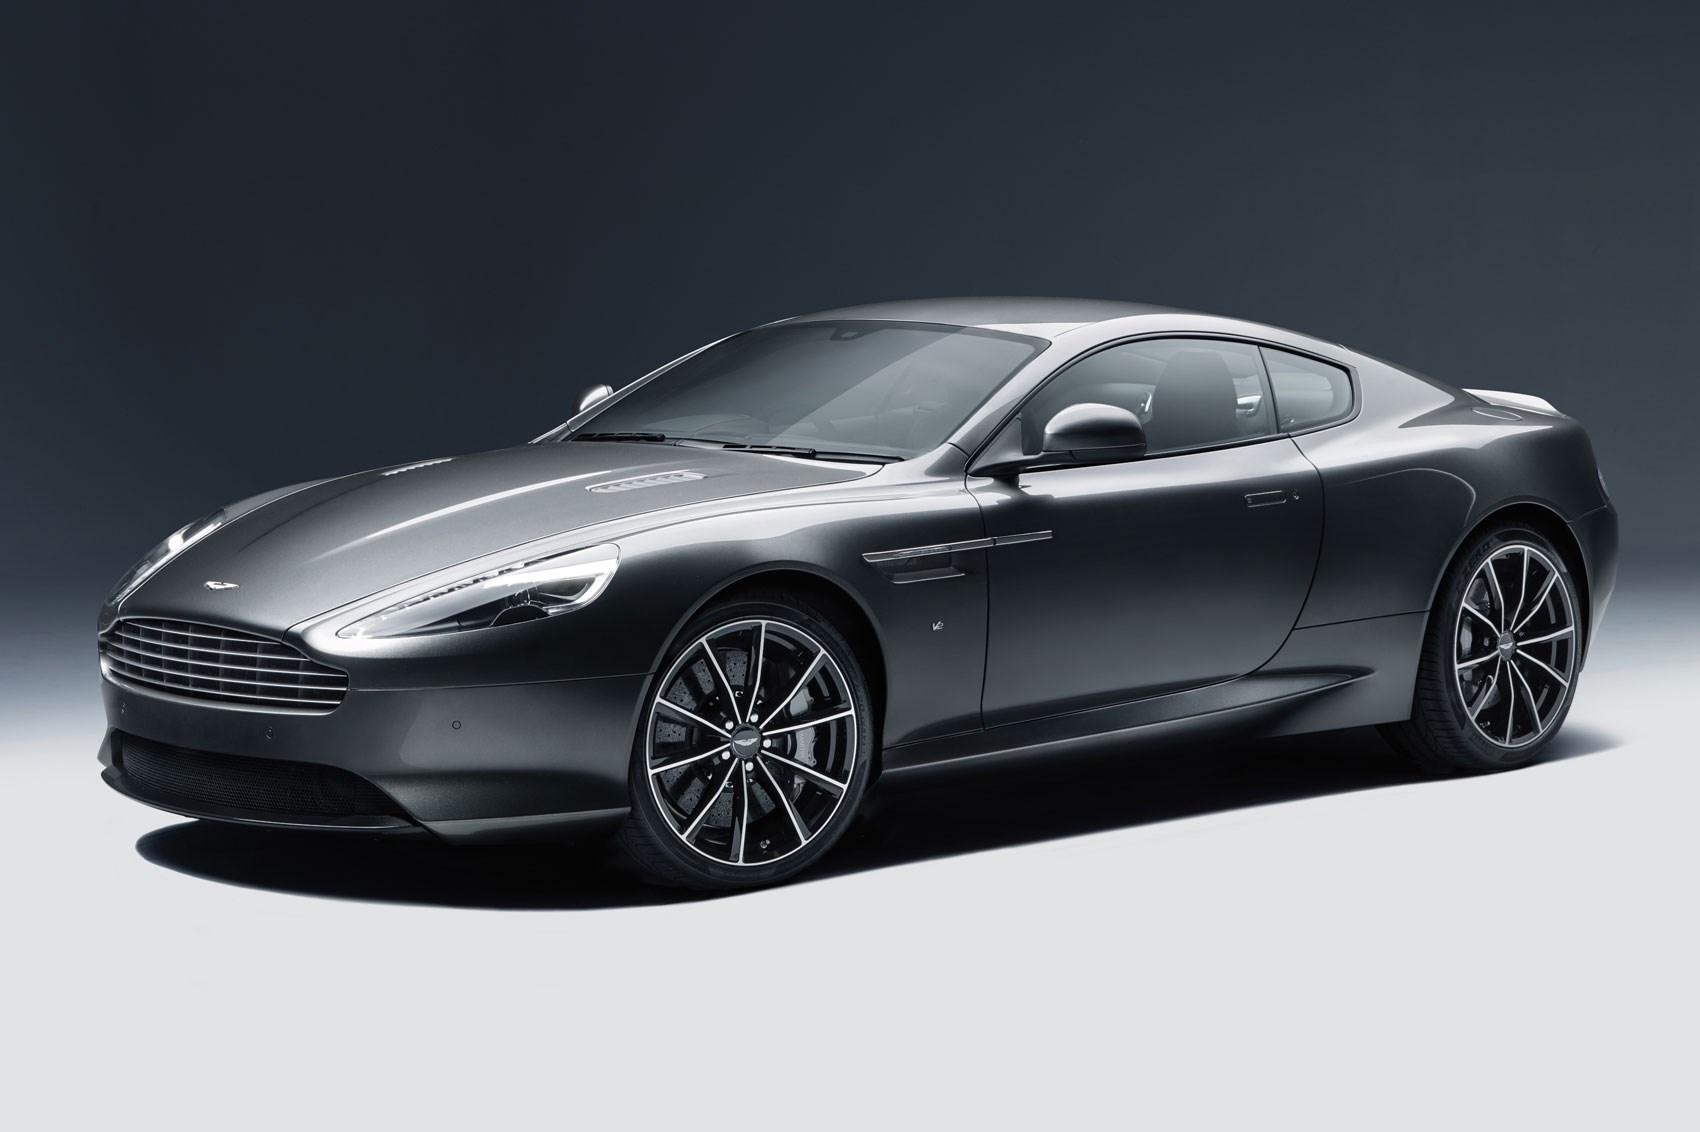 Aston Martin DB9 GT 2015 a 540bhp final fling for the DB9 by